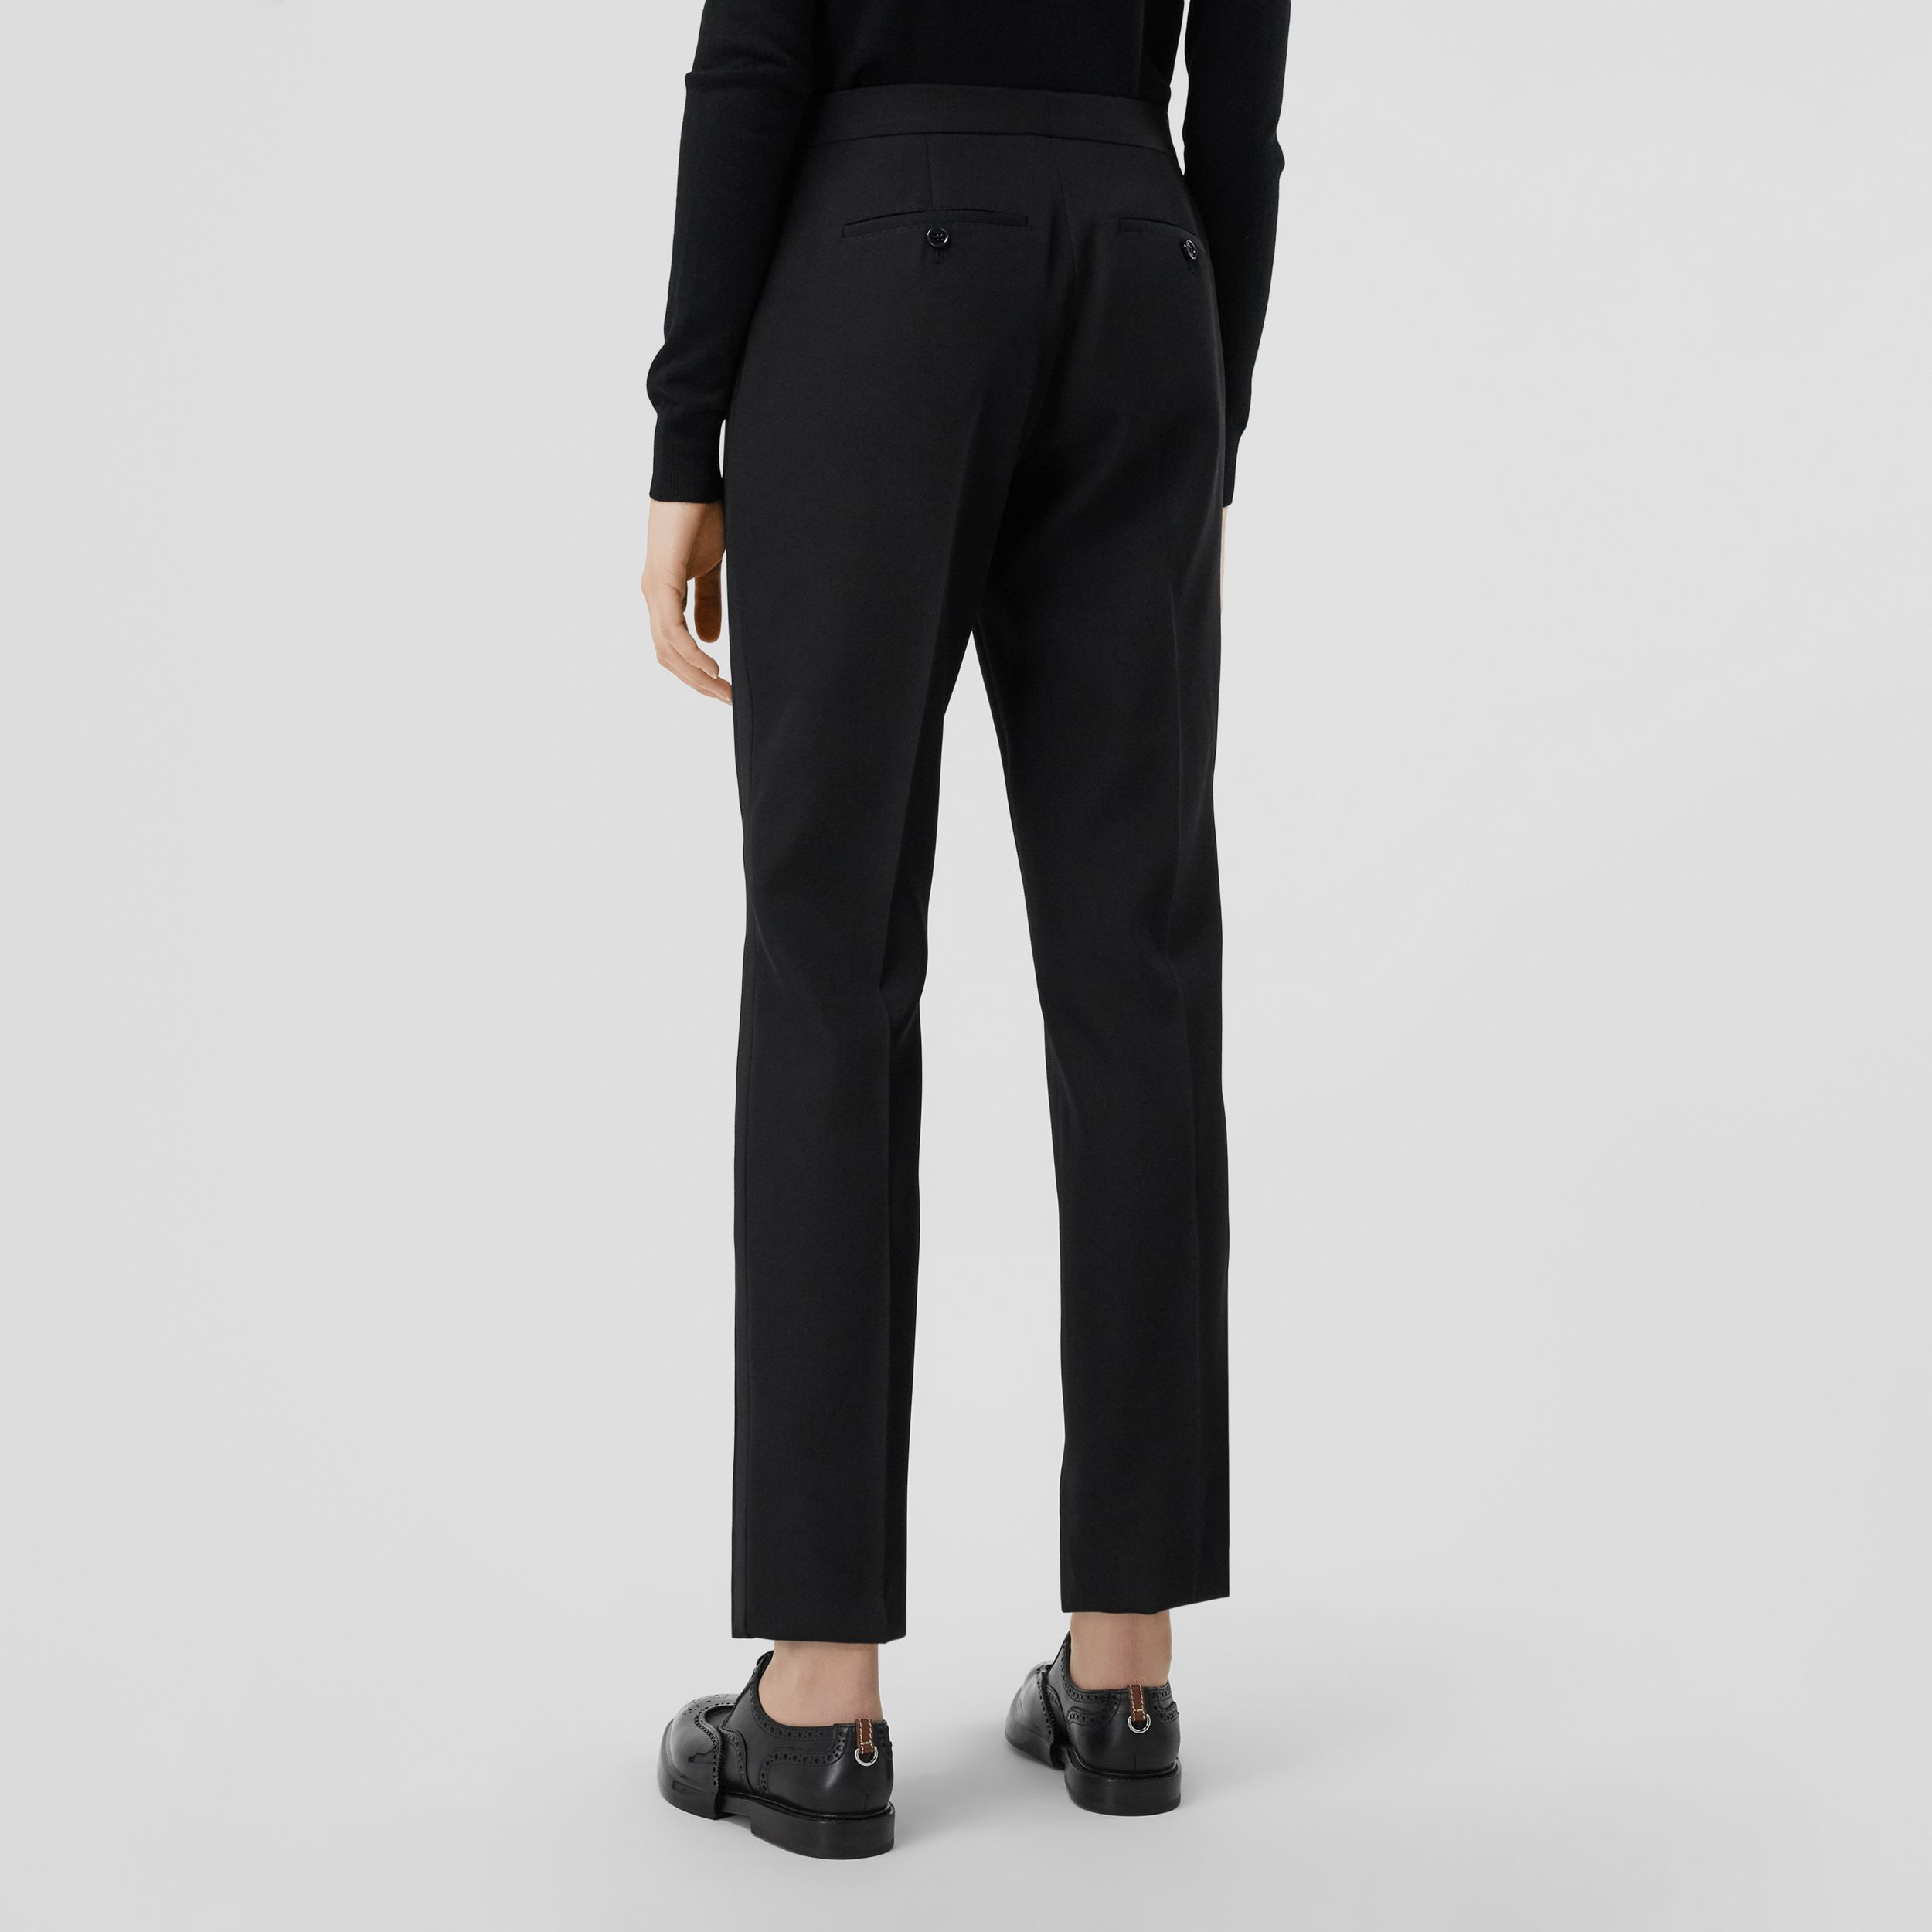 Silk Blend Side Stripe Wool Tailored Trousers in Black - Women | Burberry - 3